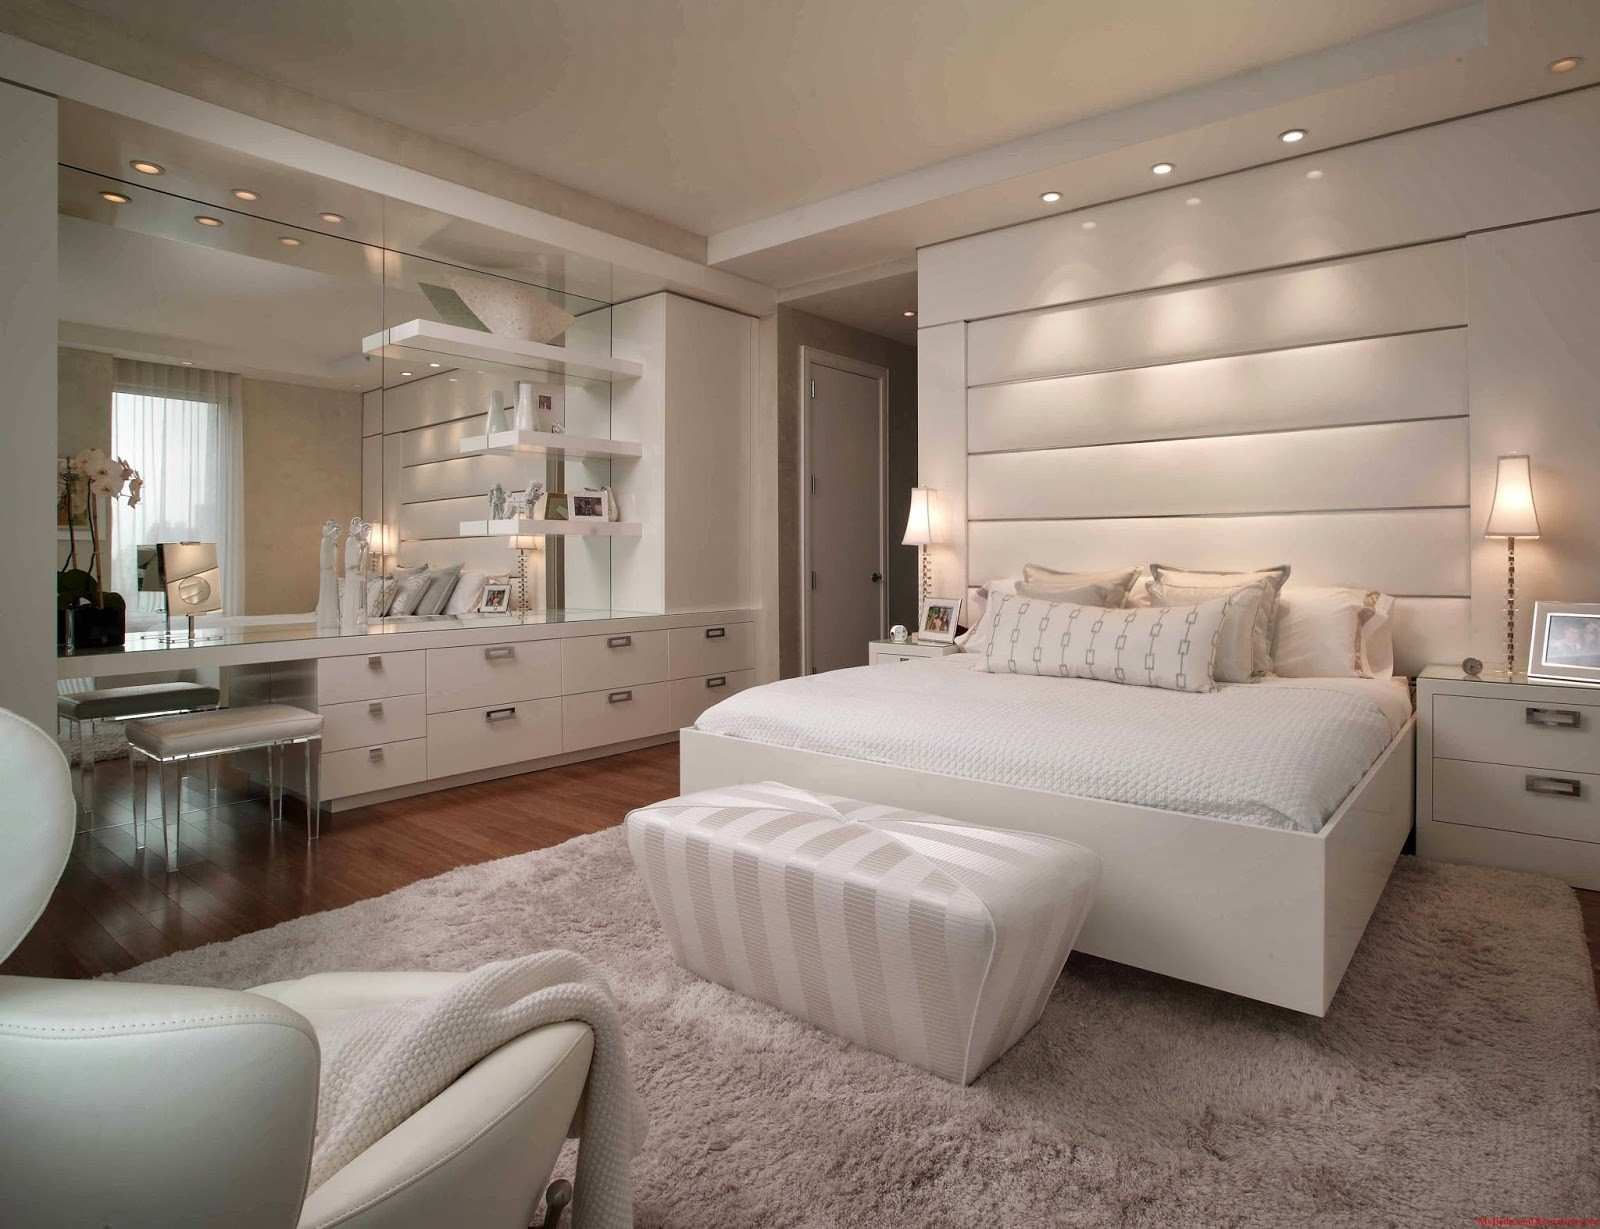 Best Couple Bedroom Design